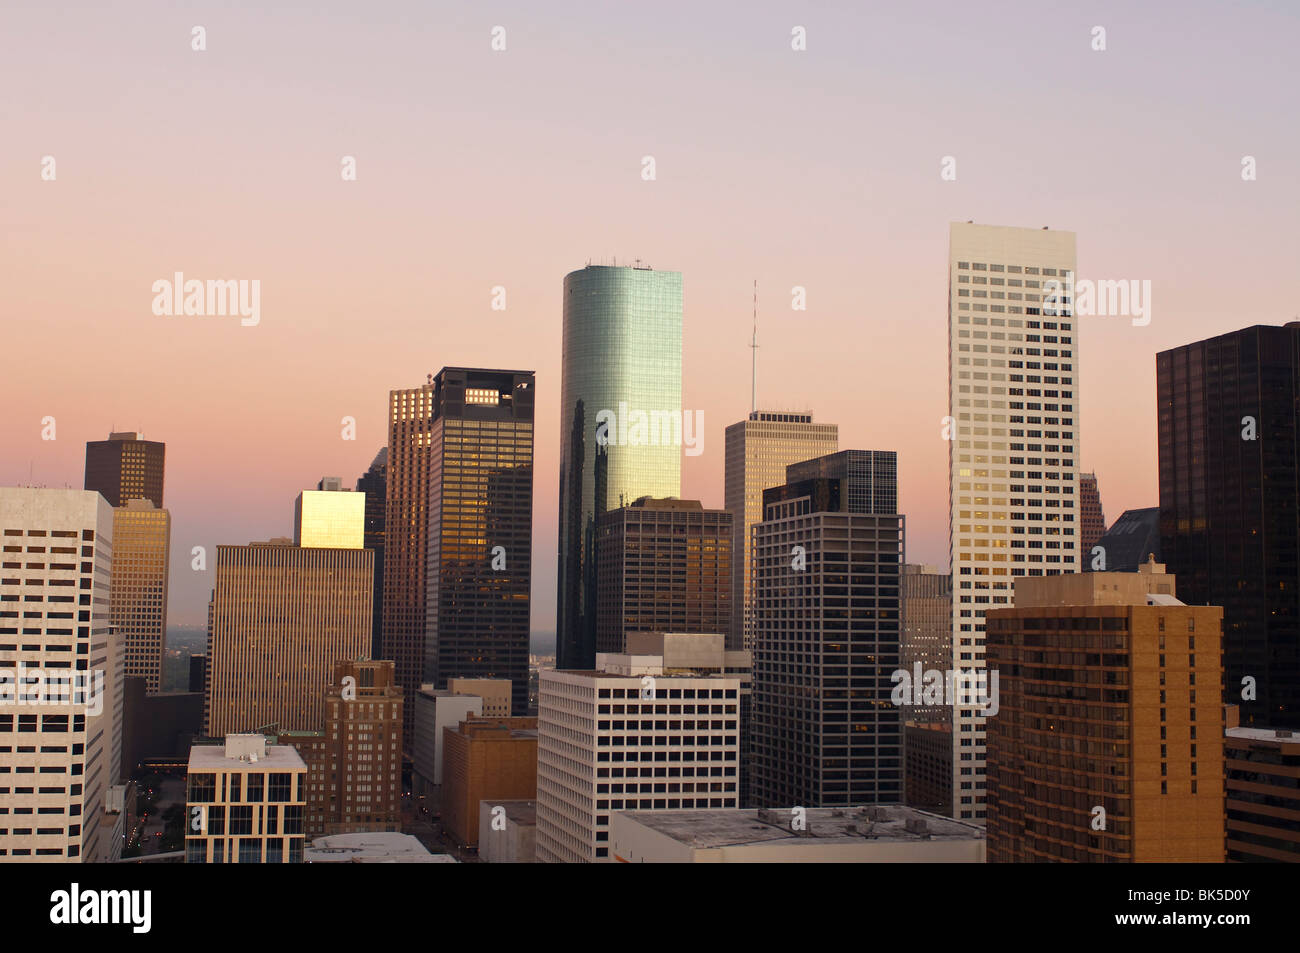 Skyline, Houston, Texas, Estados Unidos de América, América del Norte Imagen De Stock